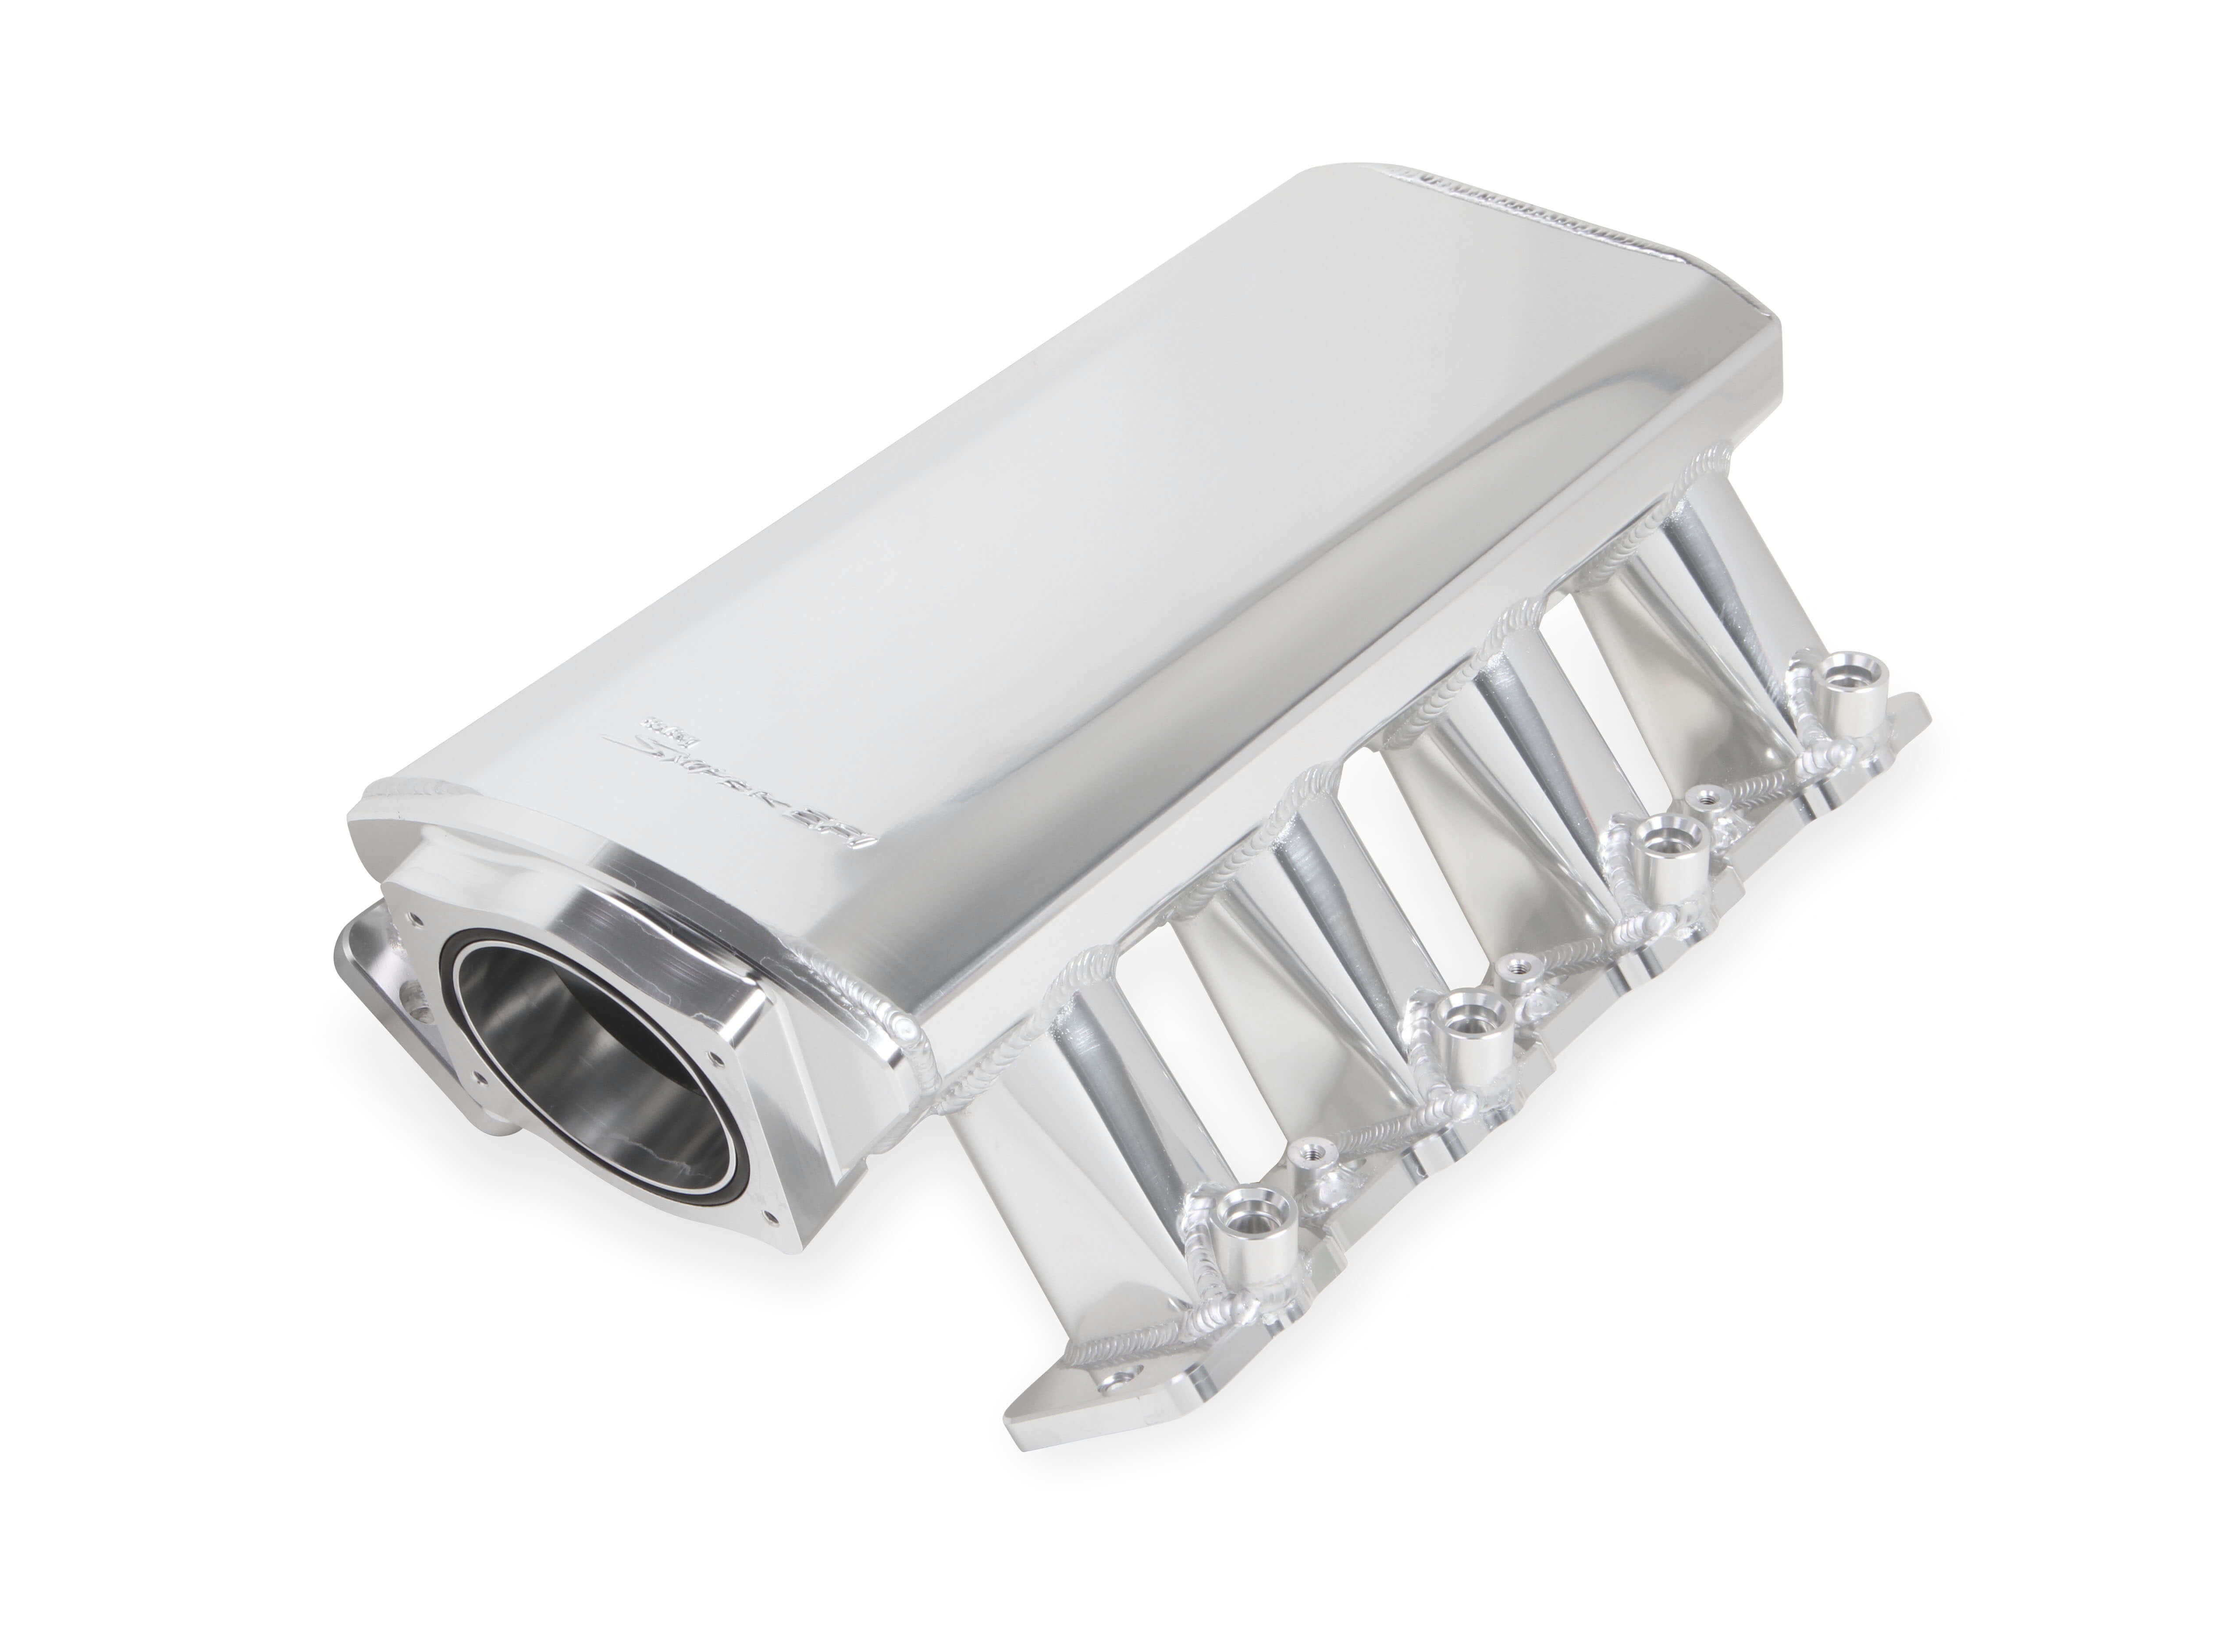 LS7 Holley 102mm Sniper EFI Low-Profile Sheet Metal Fabricated Intake Manifold & Fuel Rail Kit - Silver